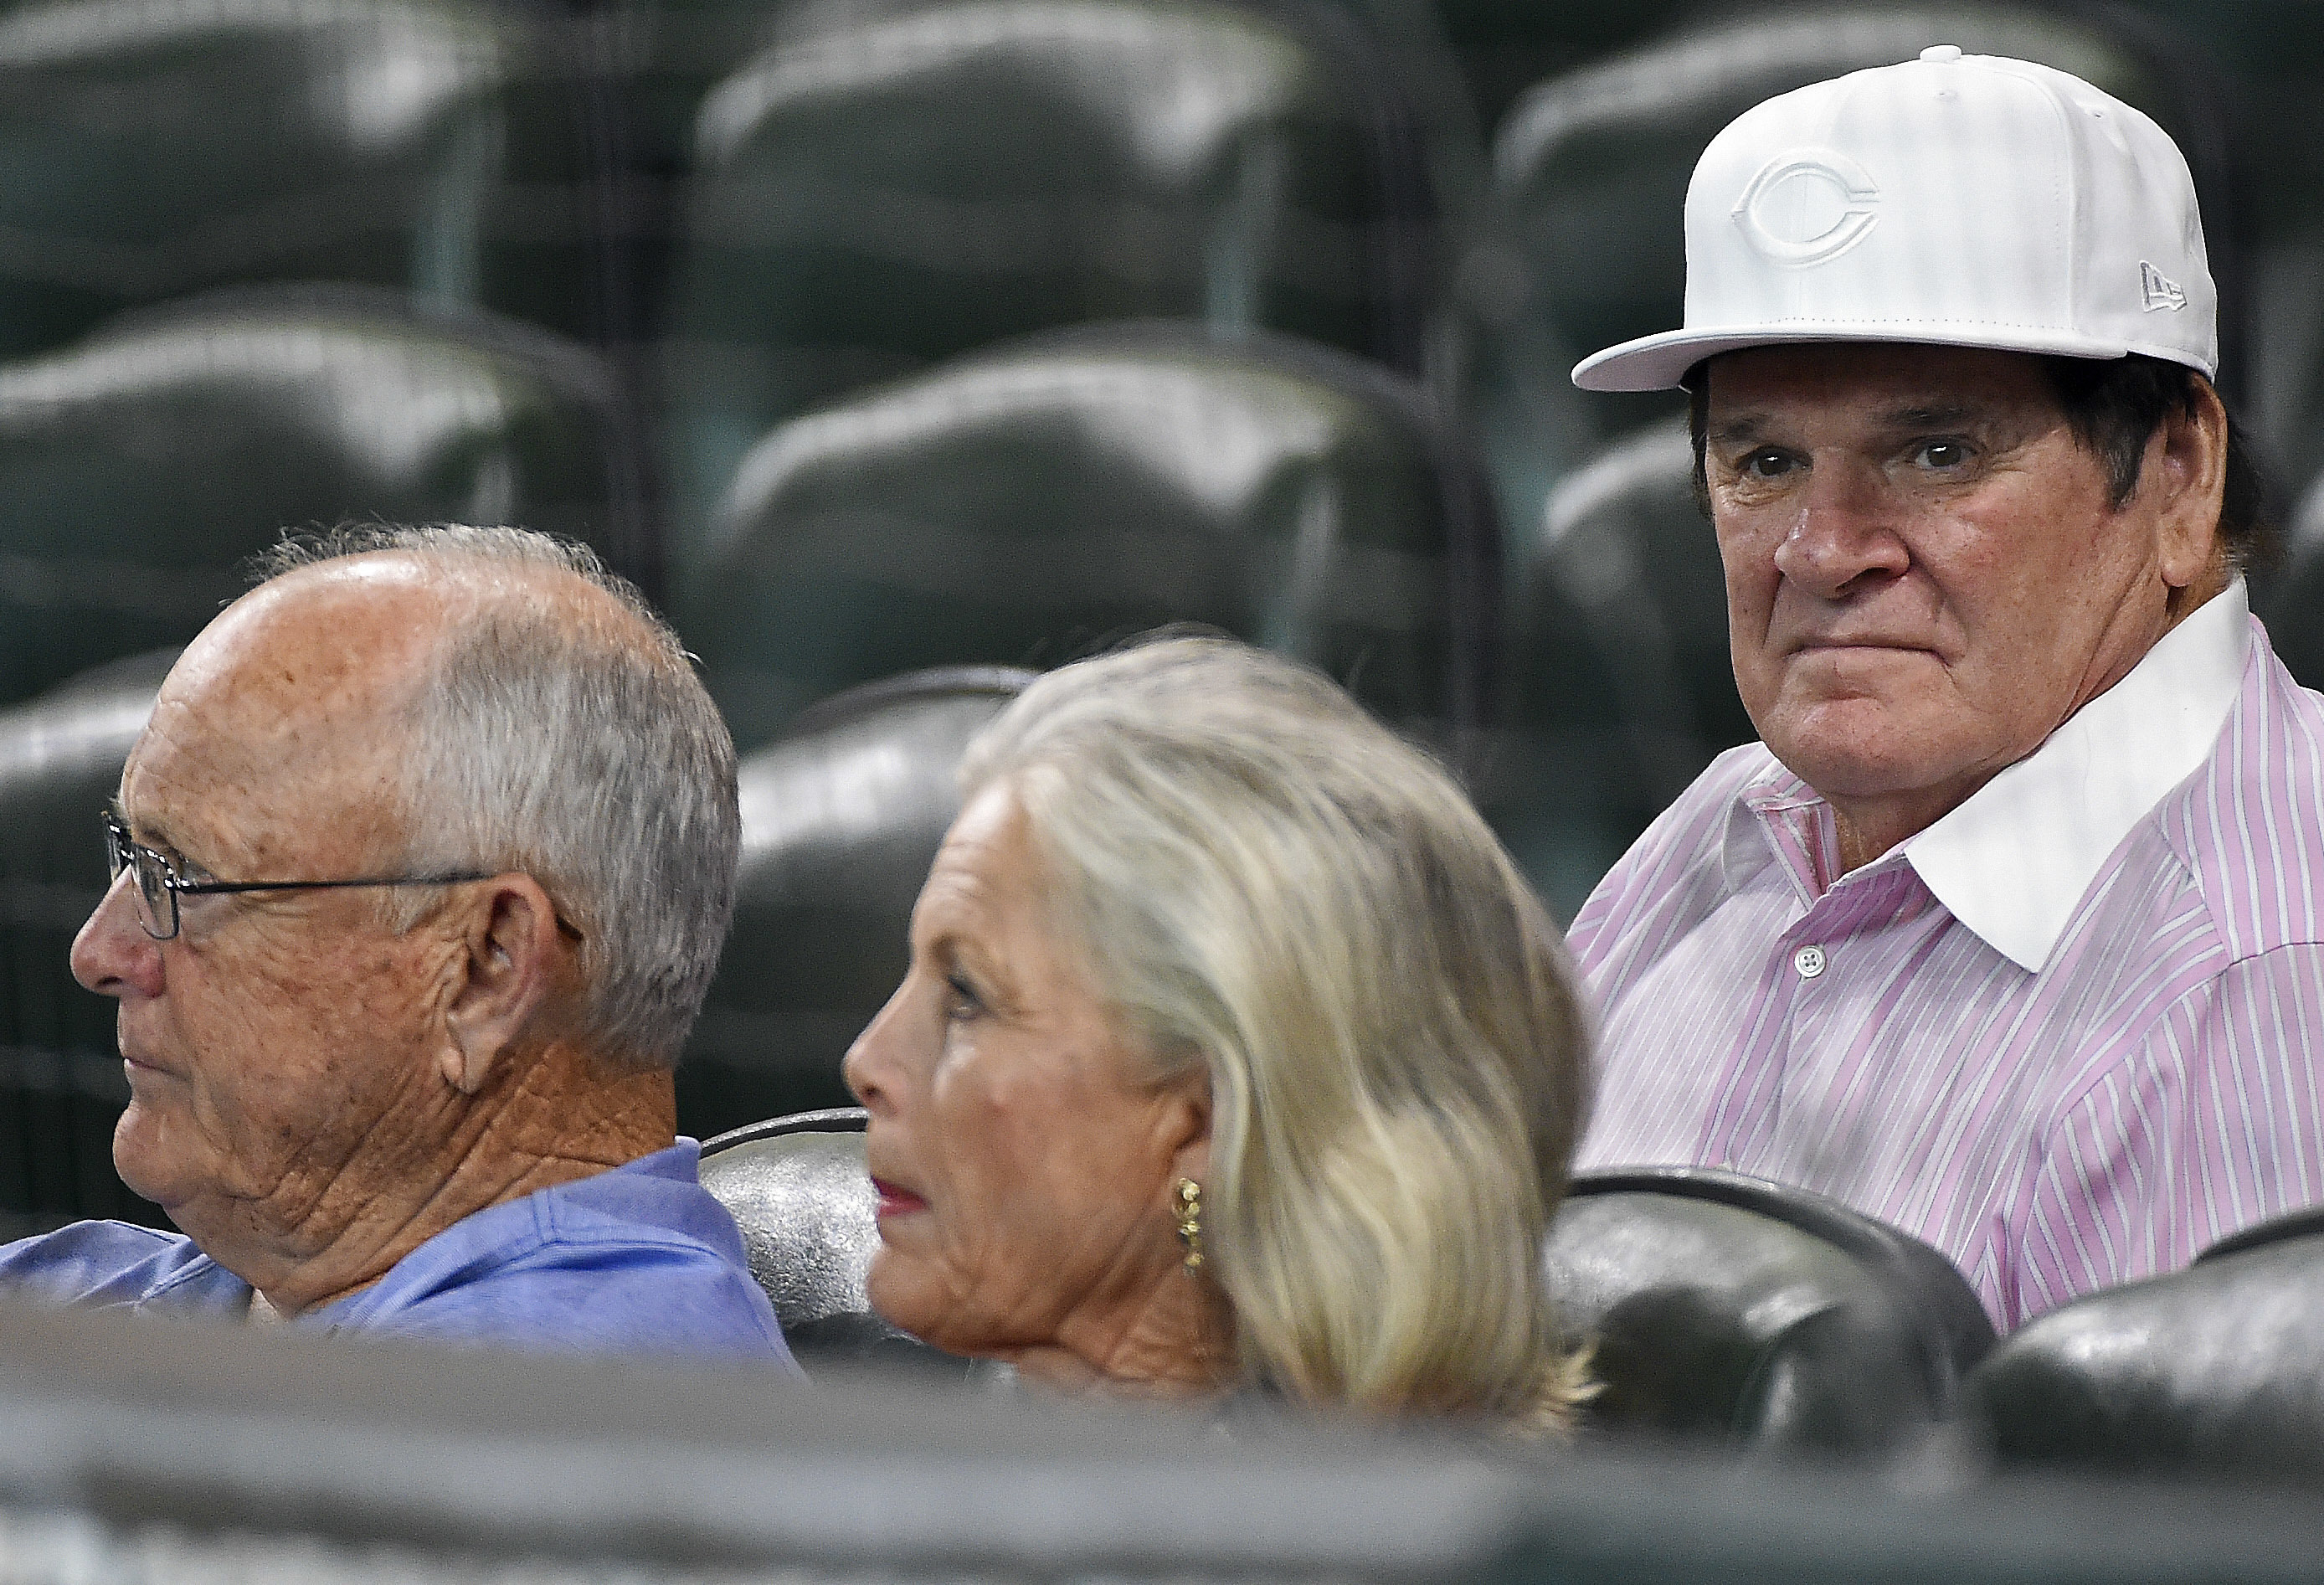 Pete Rose, right, and Nolan Ryan, left, watch a baseball game between the Houston Astros and the Cincinnati Reds, Friday, June 17, 2016, in Houston. (AP Photo/Eric Christian Smith)